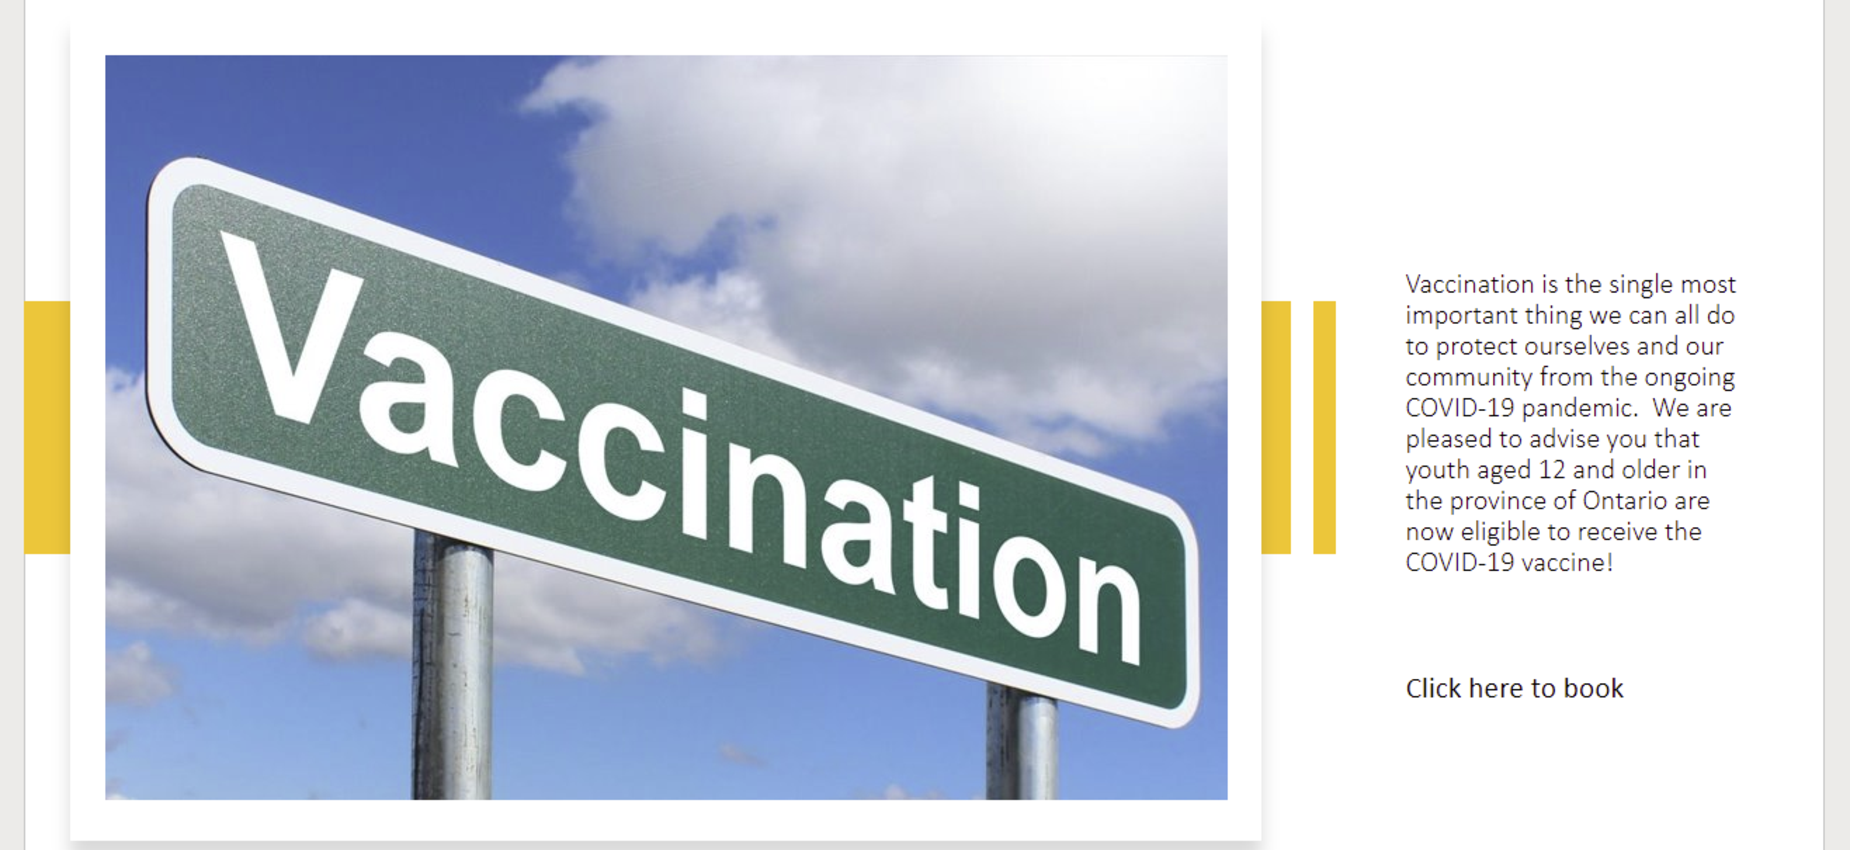 vaccination information and booking links